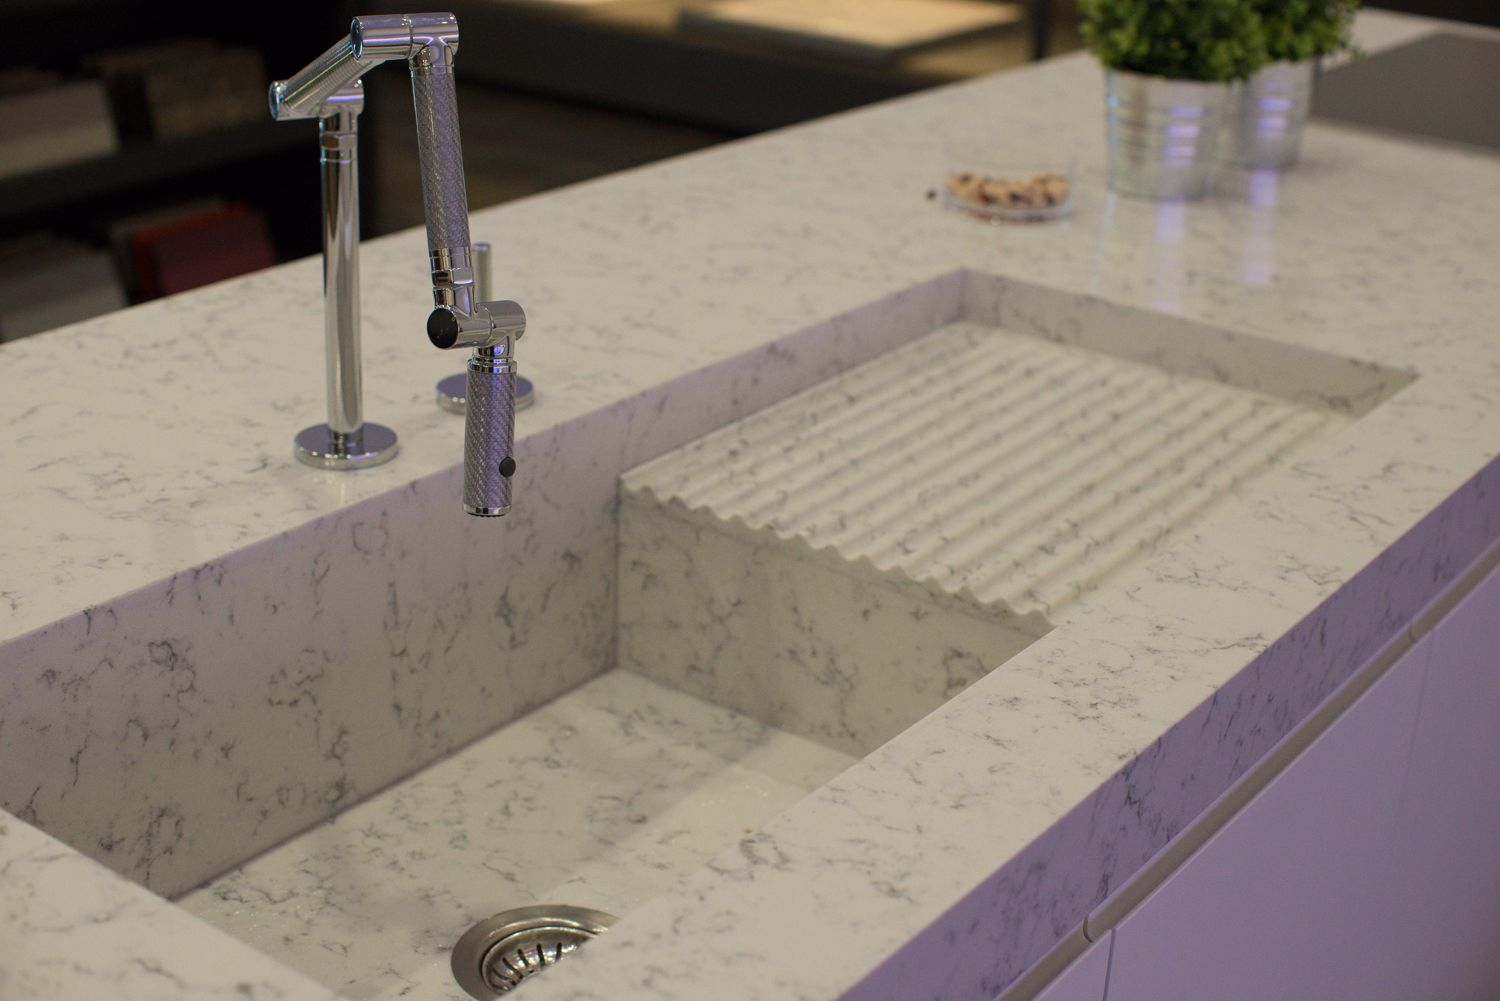 Pin by lauren joffe on interiors kitchens pinterest for Silestone sinks